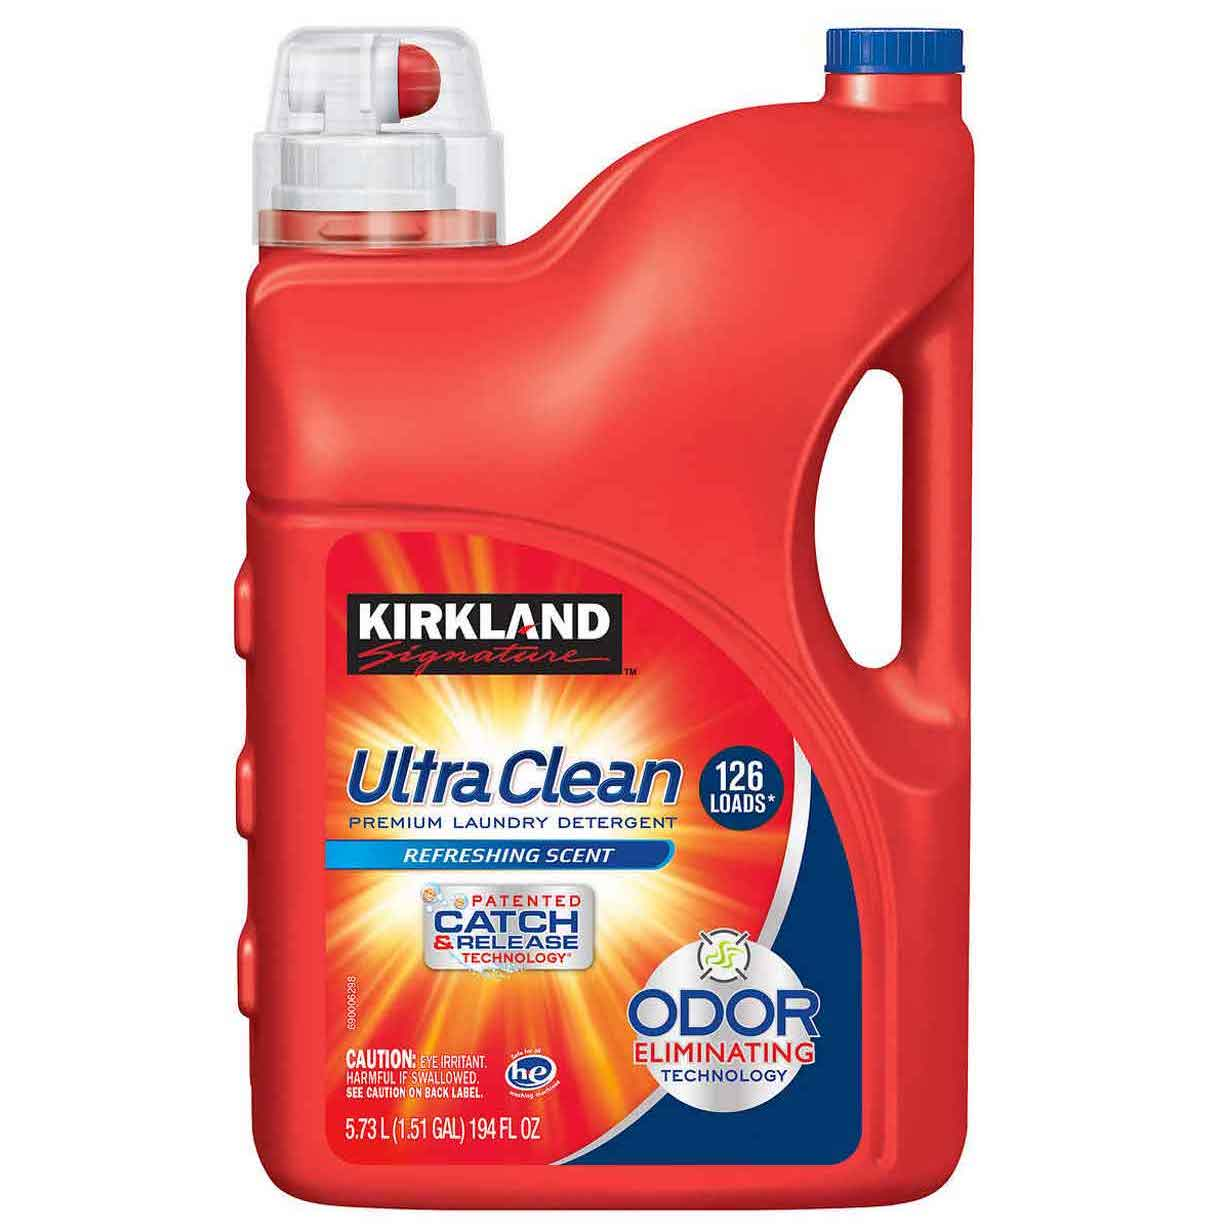 nuoc giat tay trang kirkland signature ultra clean laundry detergent he